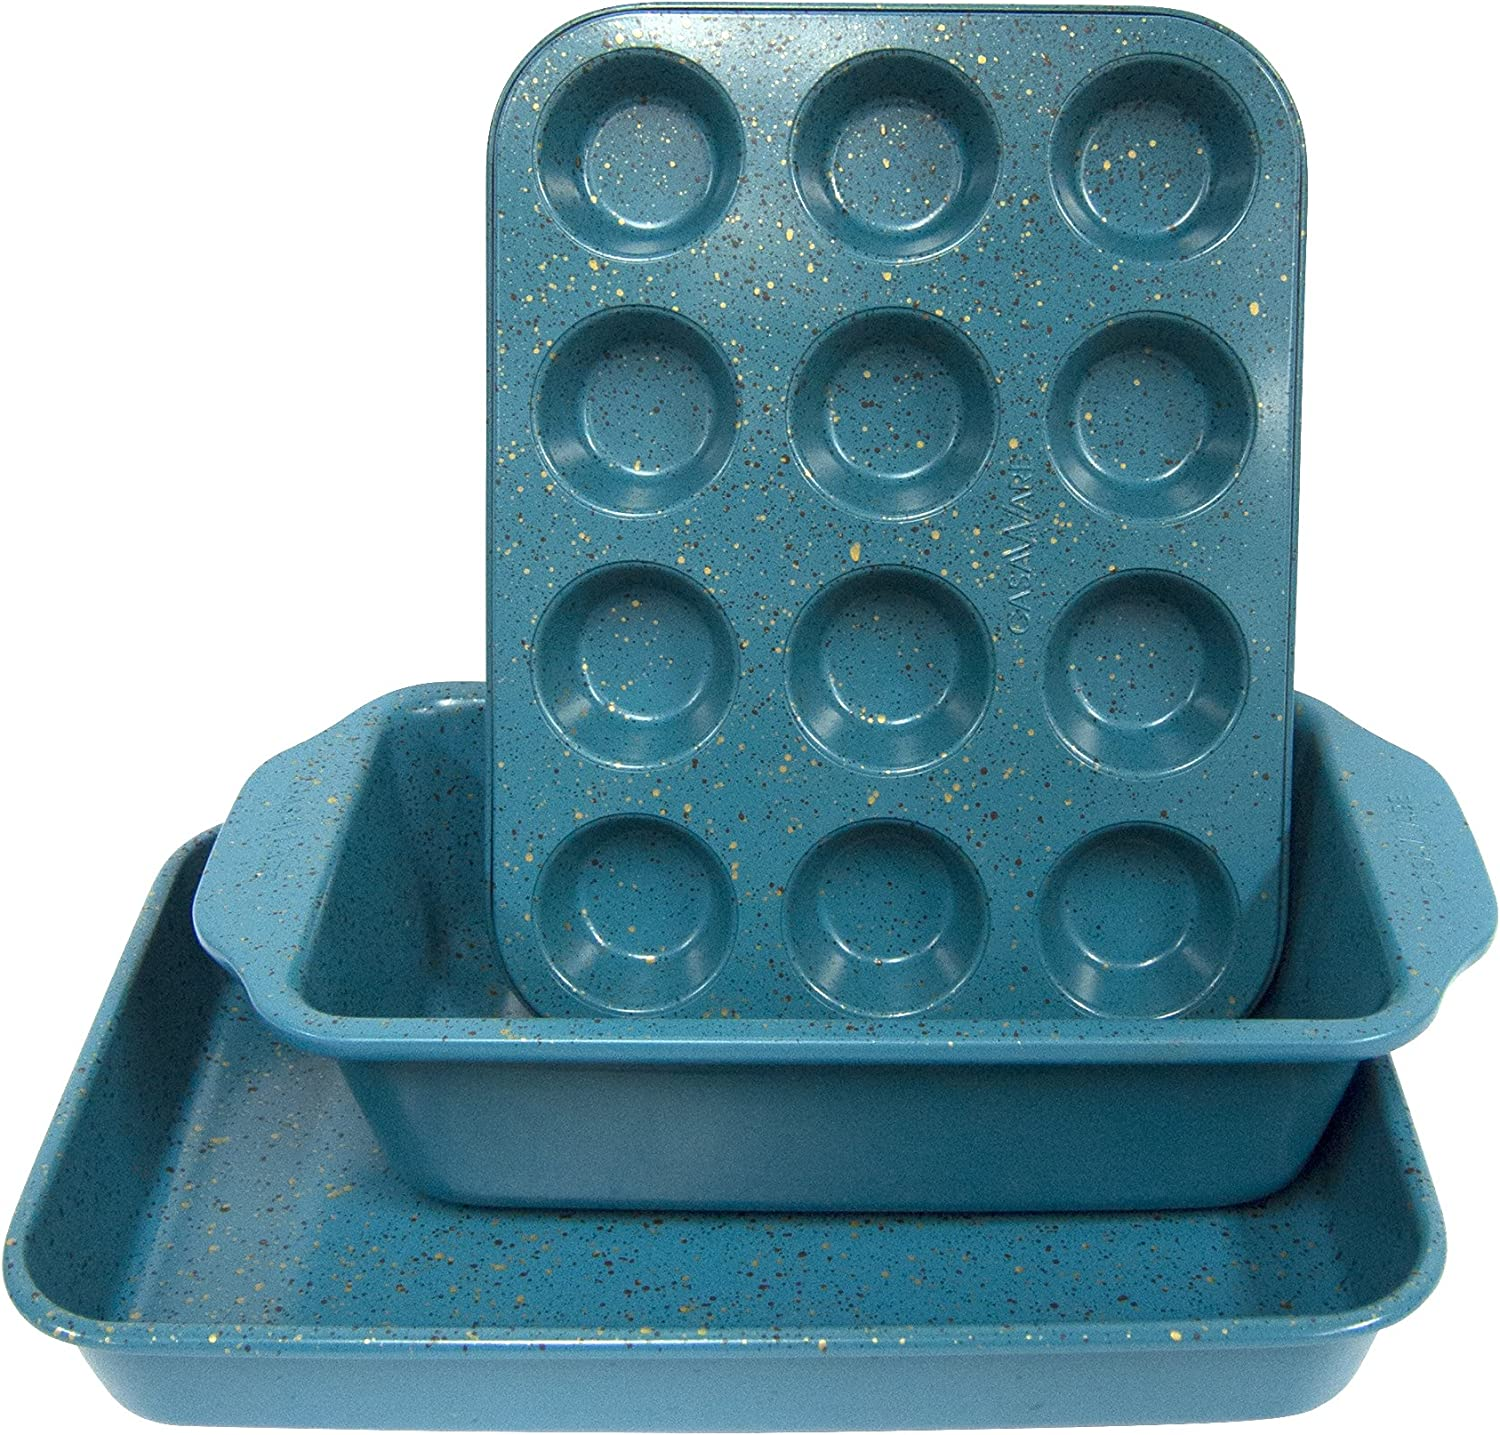 casaWare Toaster Oven 3pc Set (Baking, Loaf and Mini Muffin Pan 12 Cup) (Blue Granite)